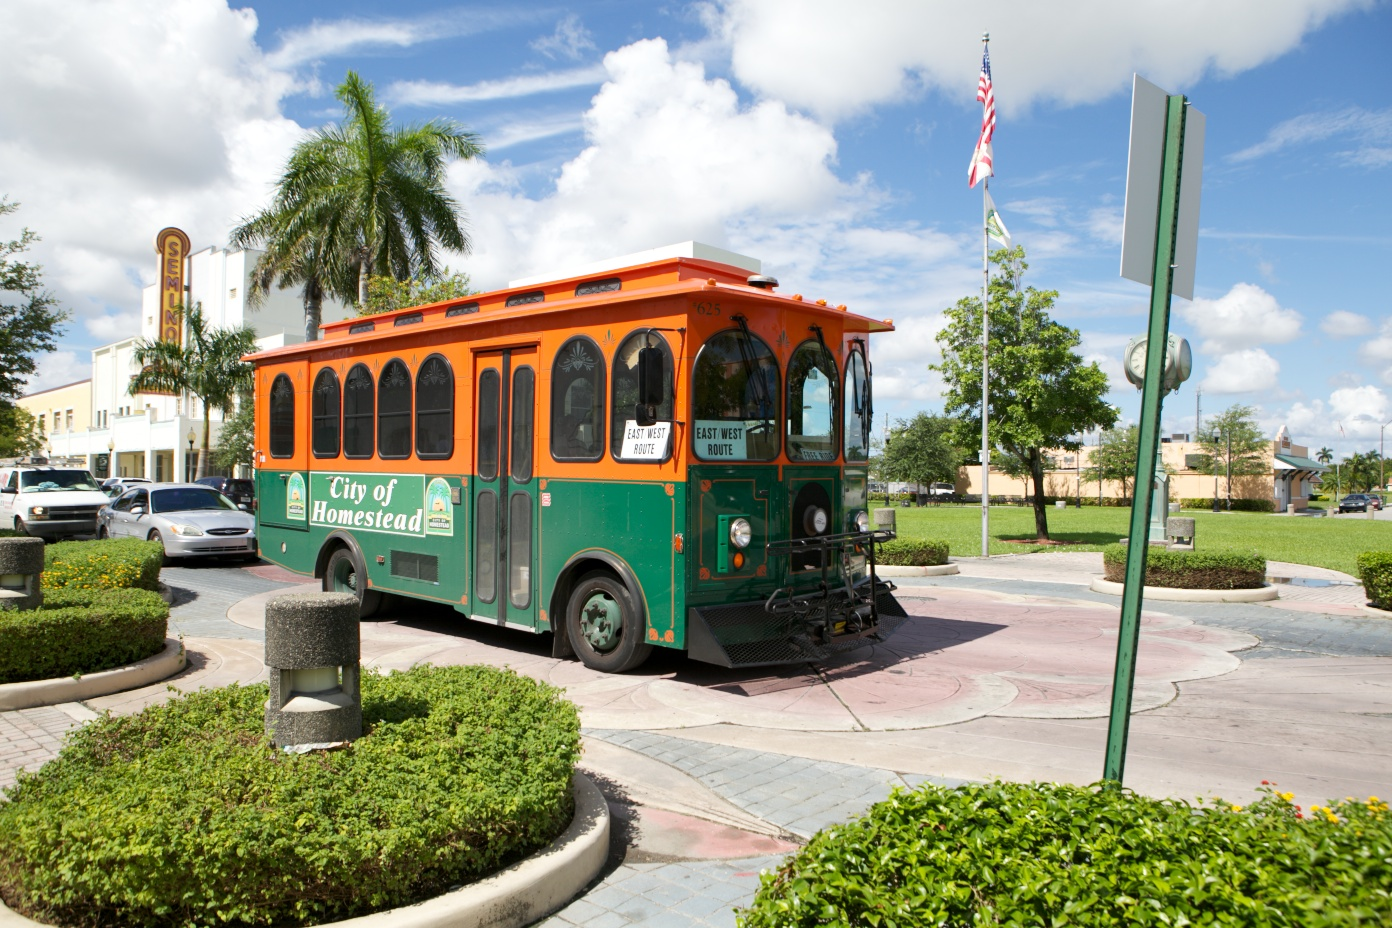 City of Homestead Trolley